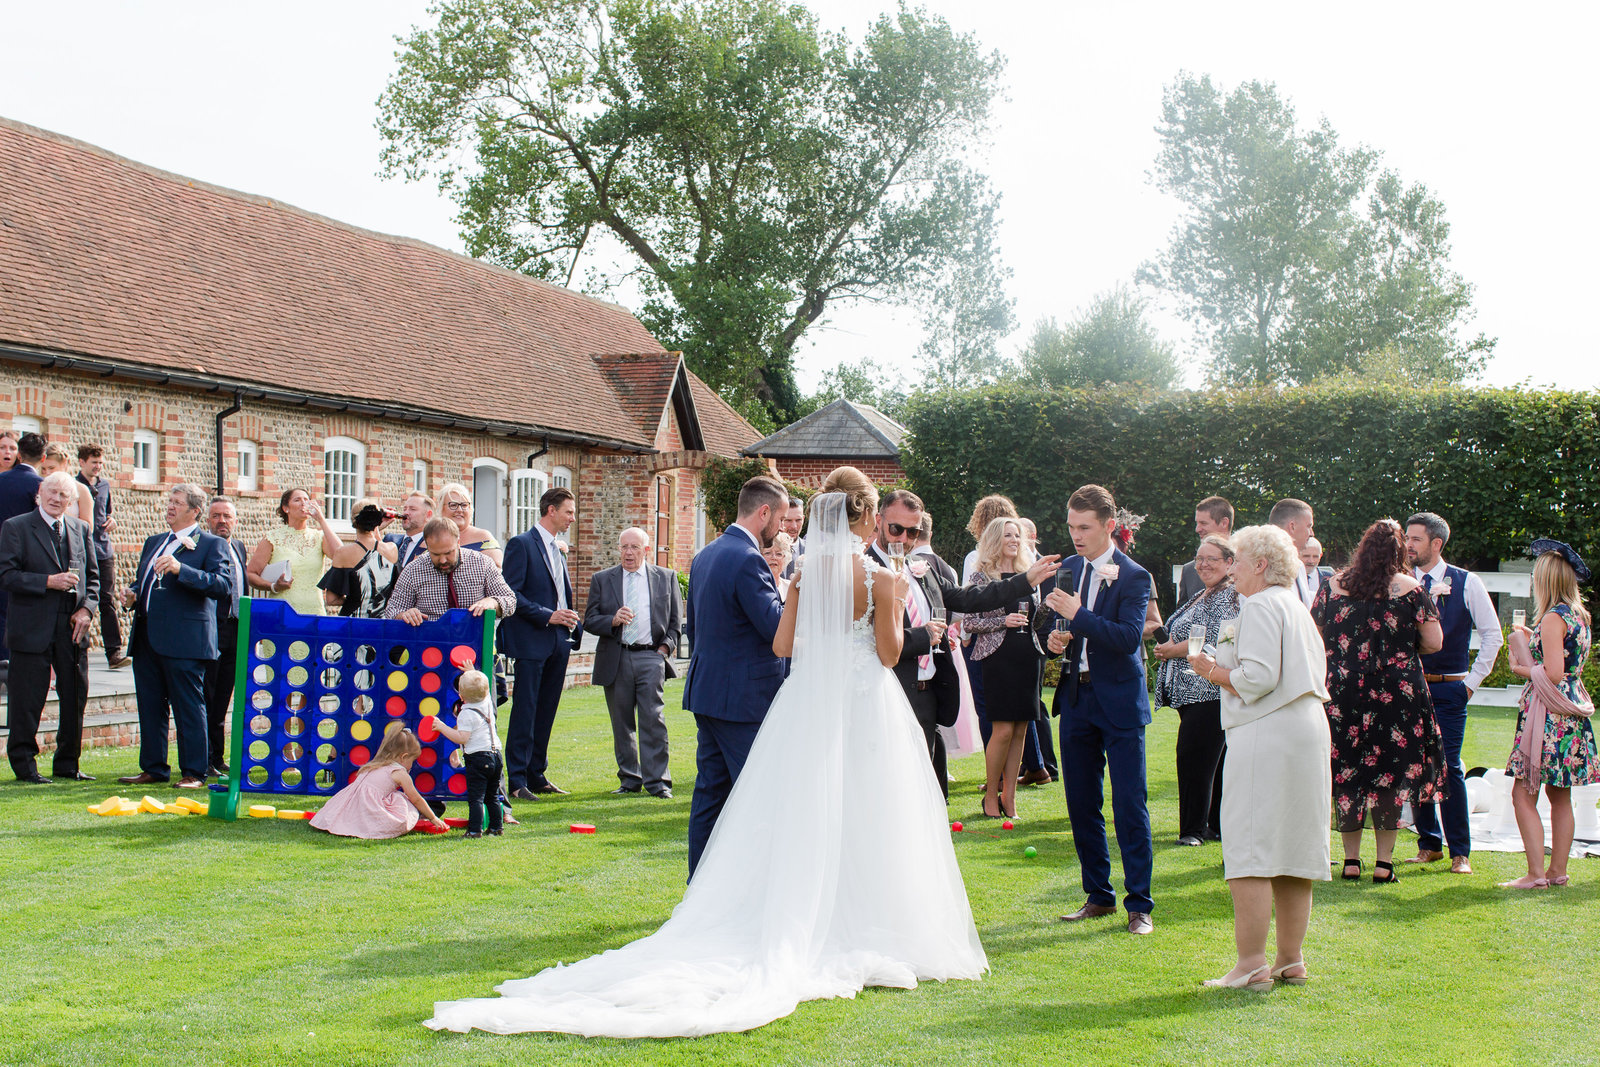 adorlee-0277-southend-barns-wedding-photographer-chichester-west-sussex